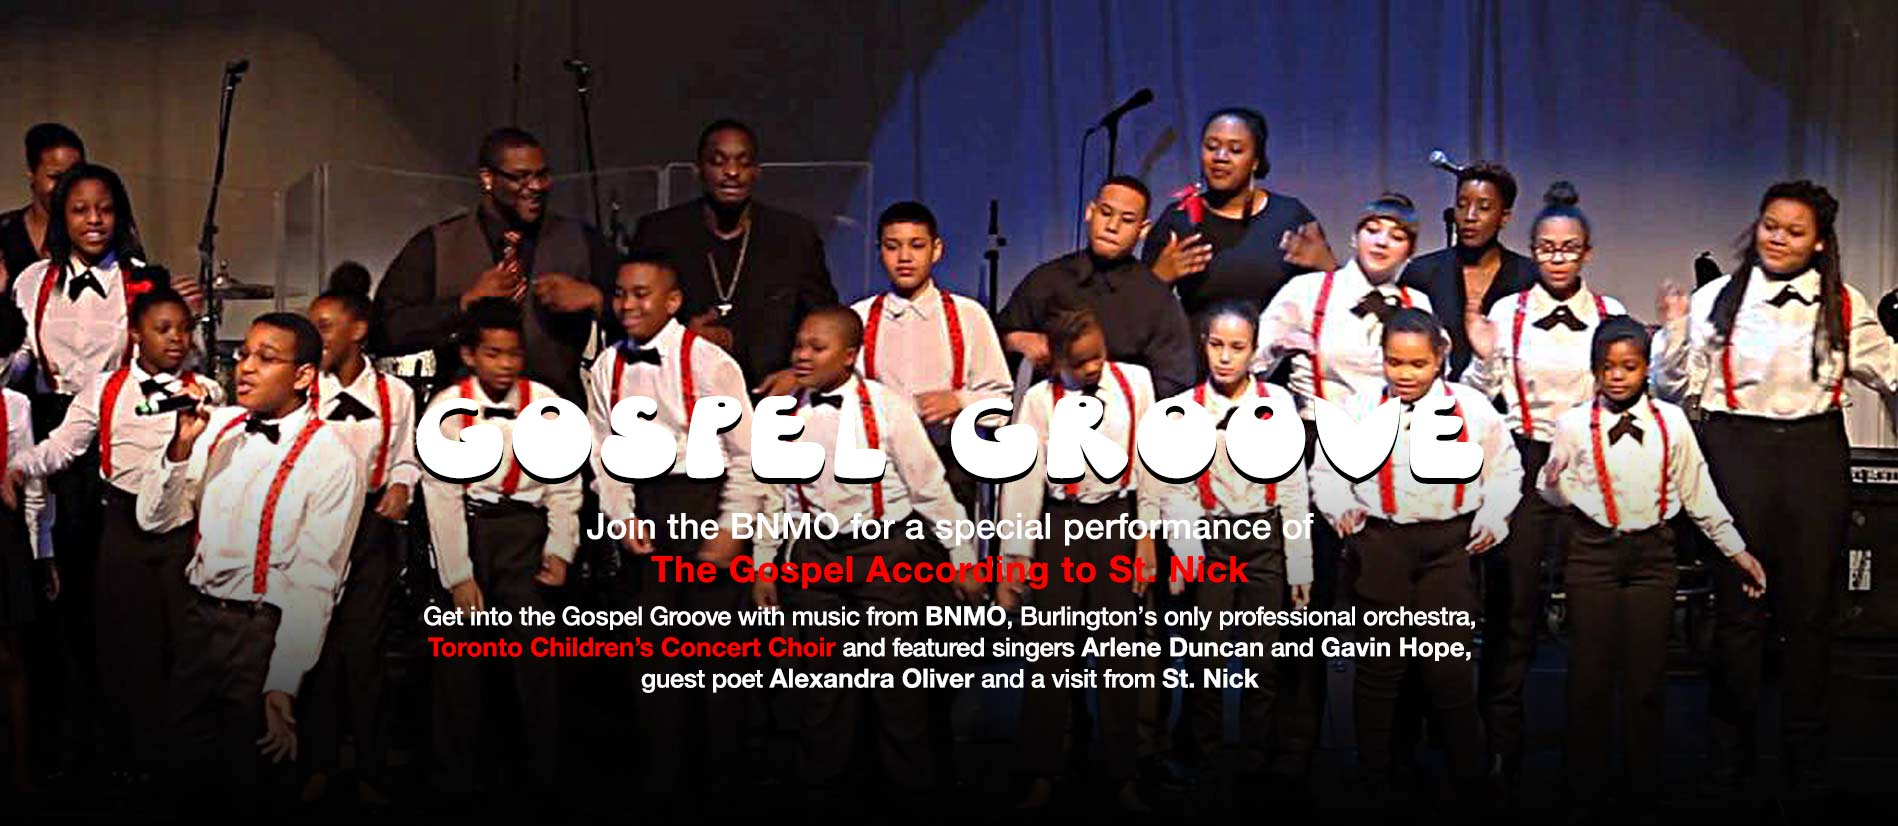 Gospel Groove at Port Nelson United Church with BNMO and Toronto Childrens Concert Choir